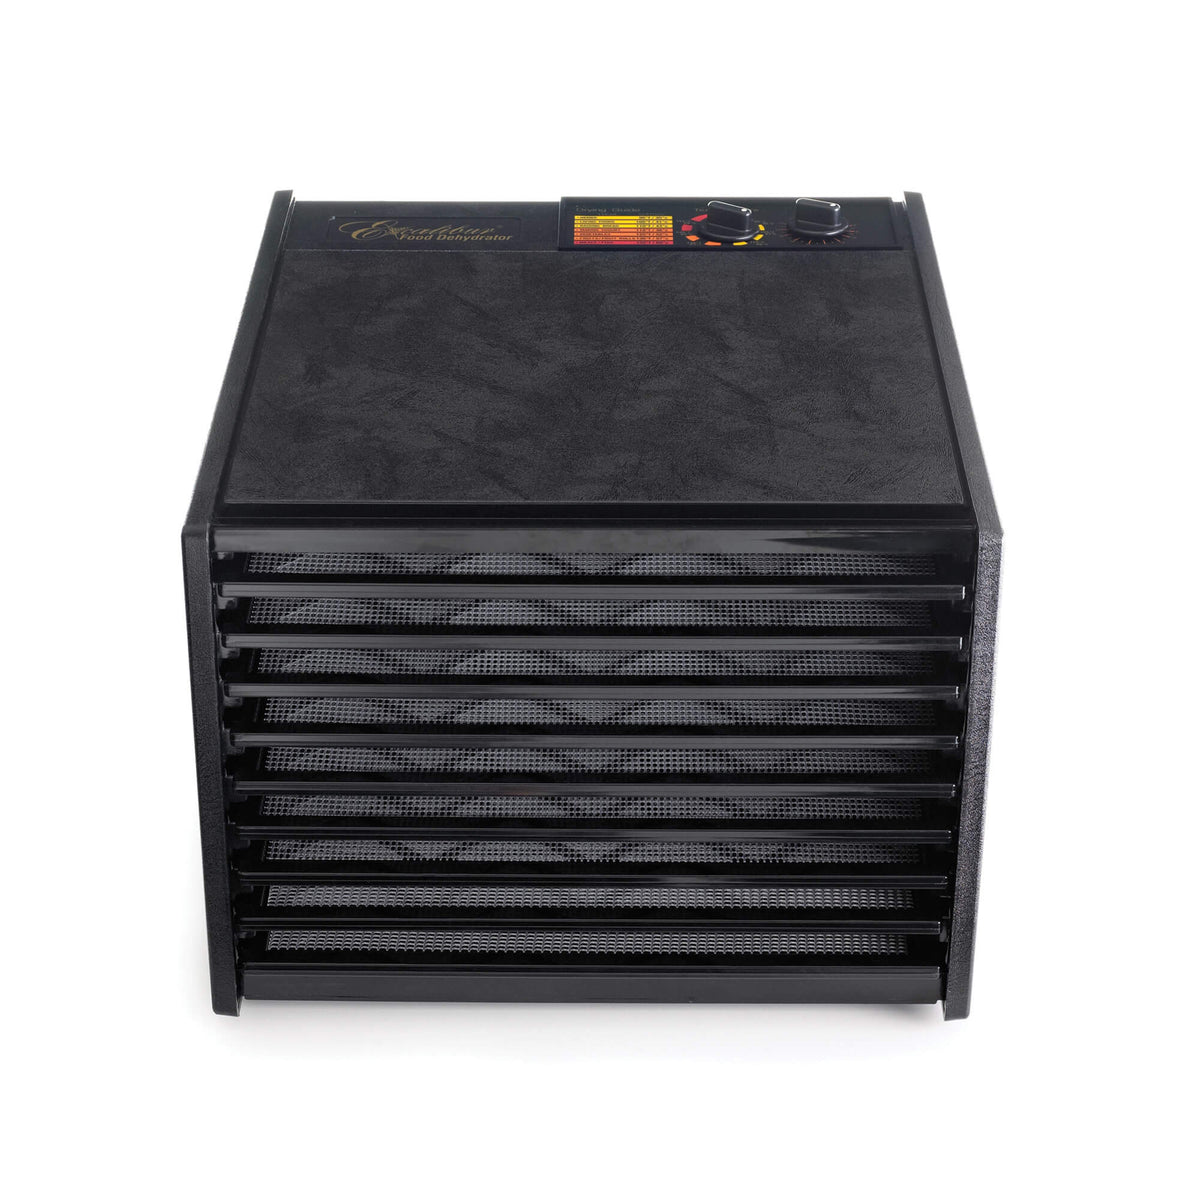 Excalibur 4926TB black 9 tray dehydrator front view with door open and trays in.